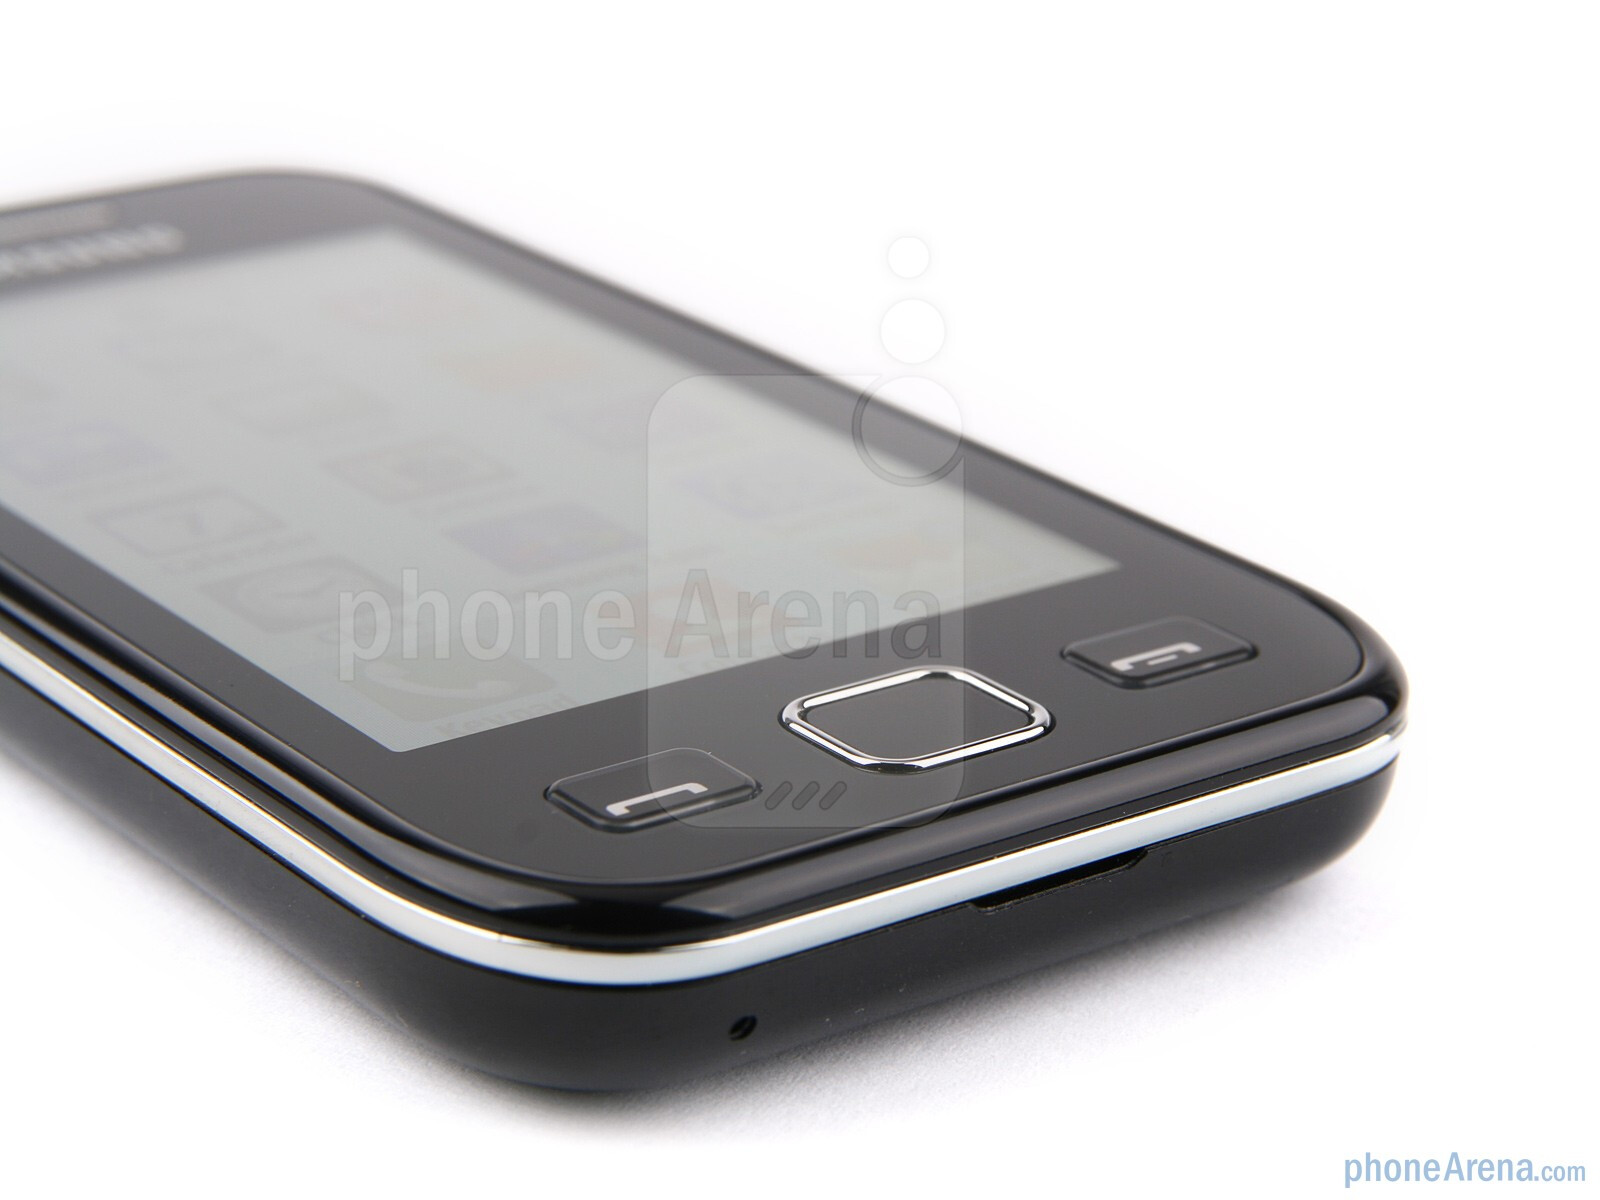 Samsung wave 525 applications free download mobile9